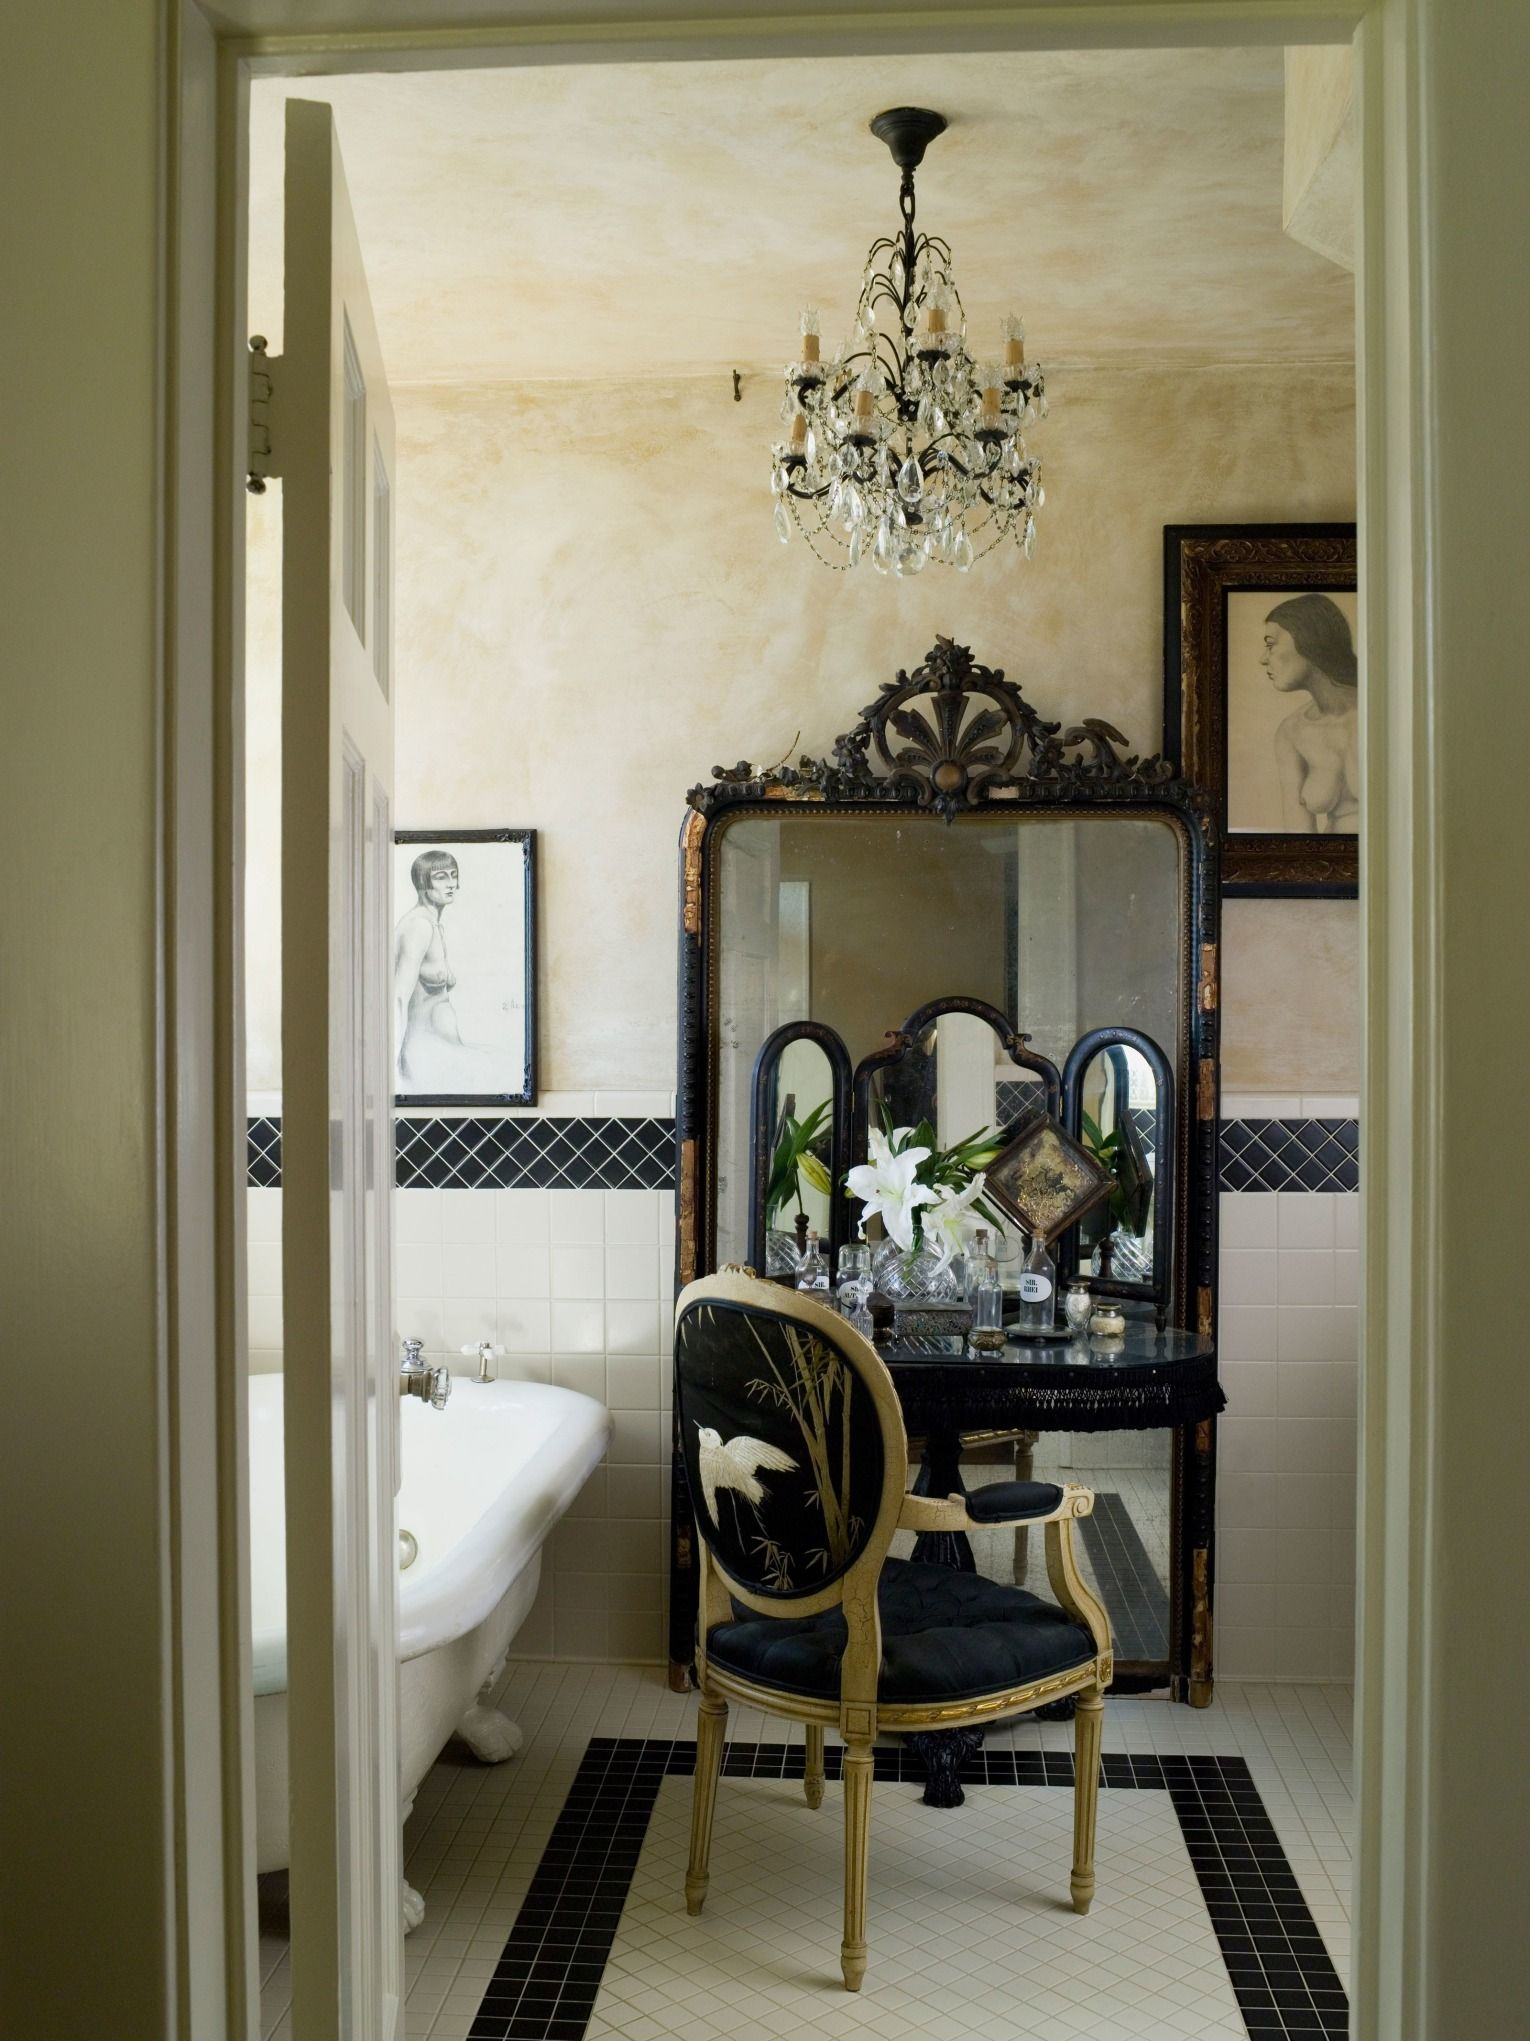 How To Create A Romantic Home The French Way French Country Bathroom French Country Decorating Top Bathroom Design